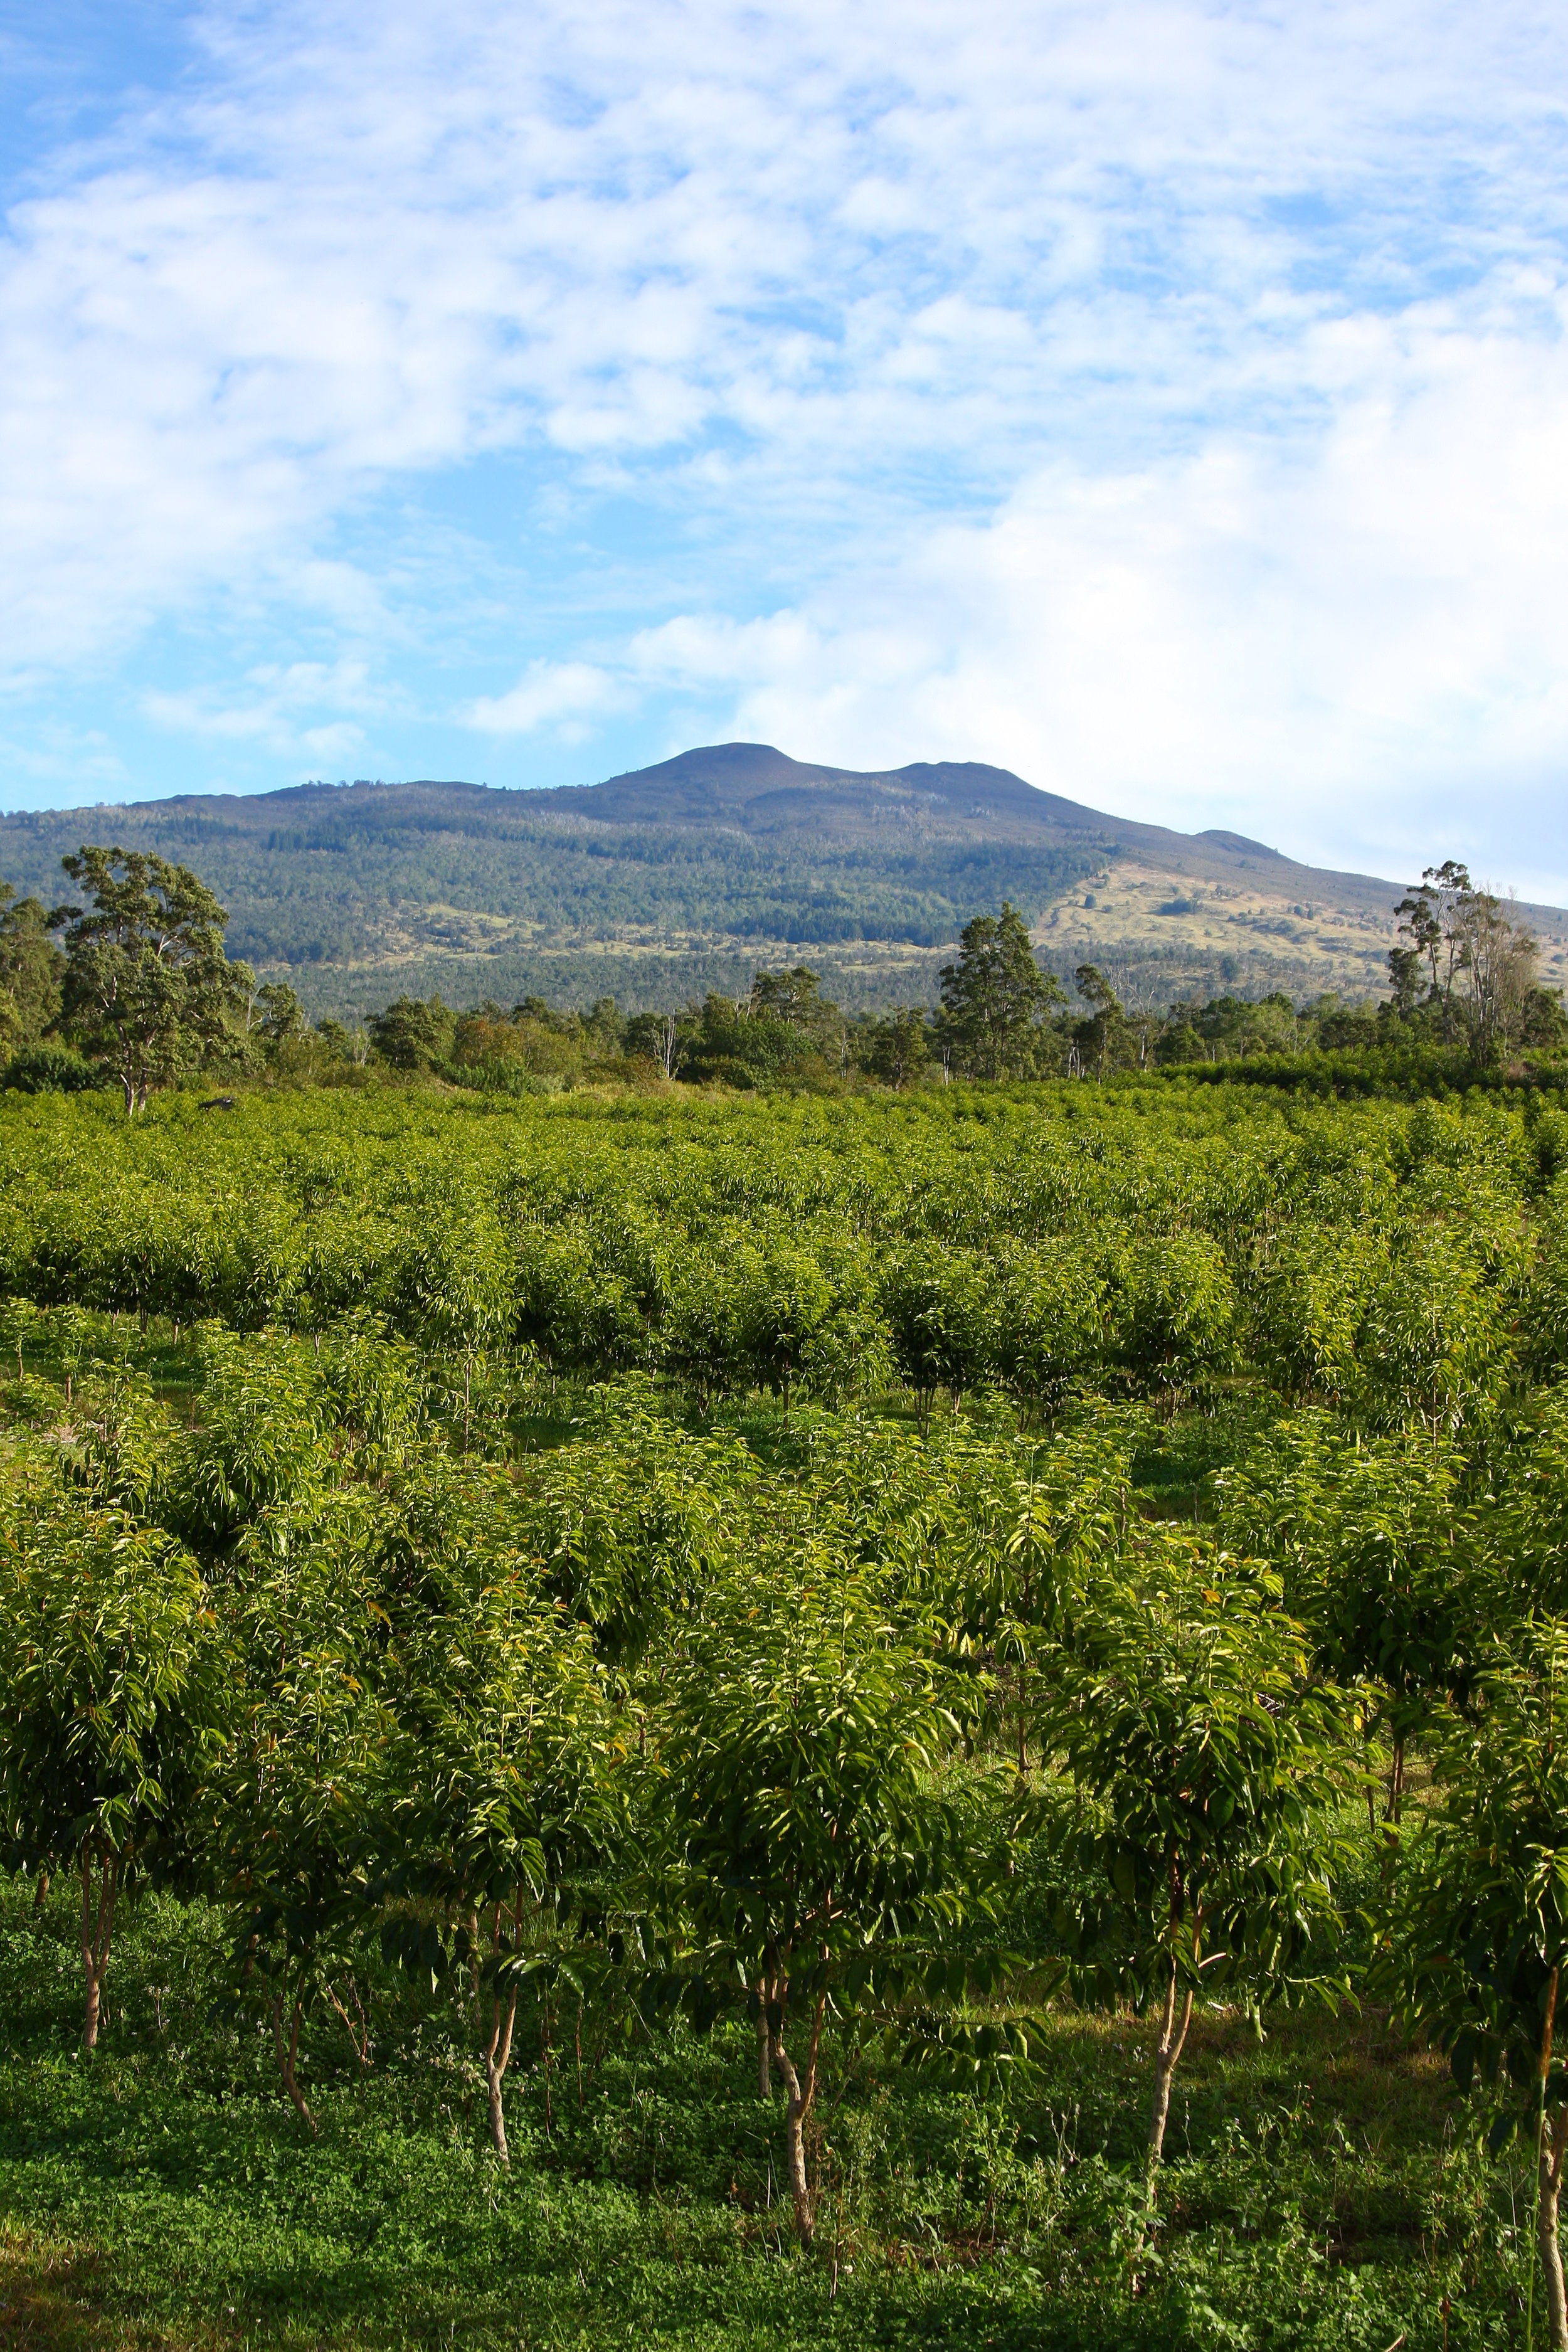 Kona Coffee and Tea Company Farm, Holualoa, Kona, Hawaii  PHOTO: Kirk Lee Aeder